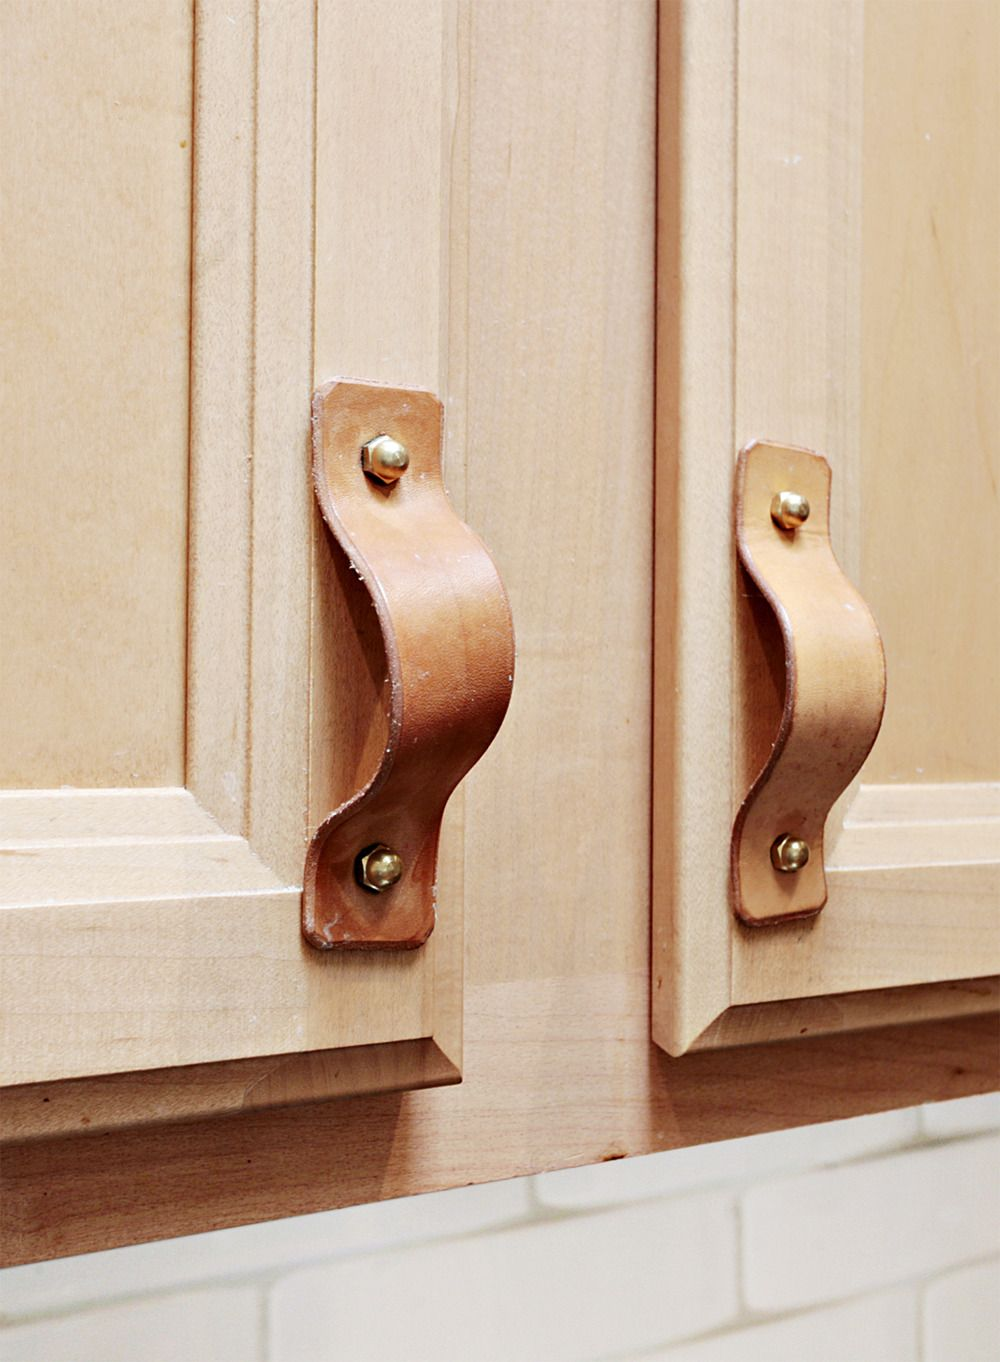 Scuba S With The Help Of Friends Kitchen Leather Cabinet Leather Cabinet Pulls Leather Door Handles